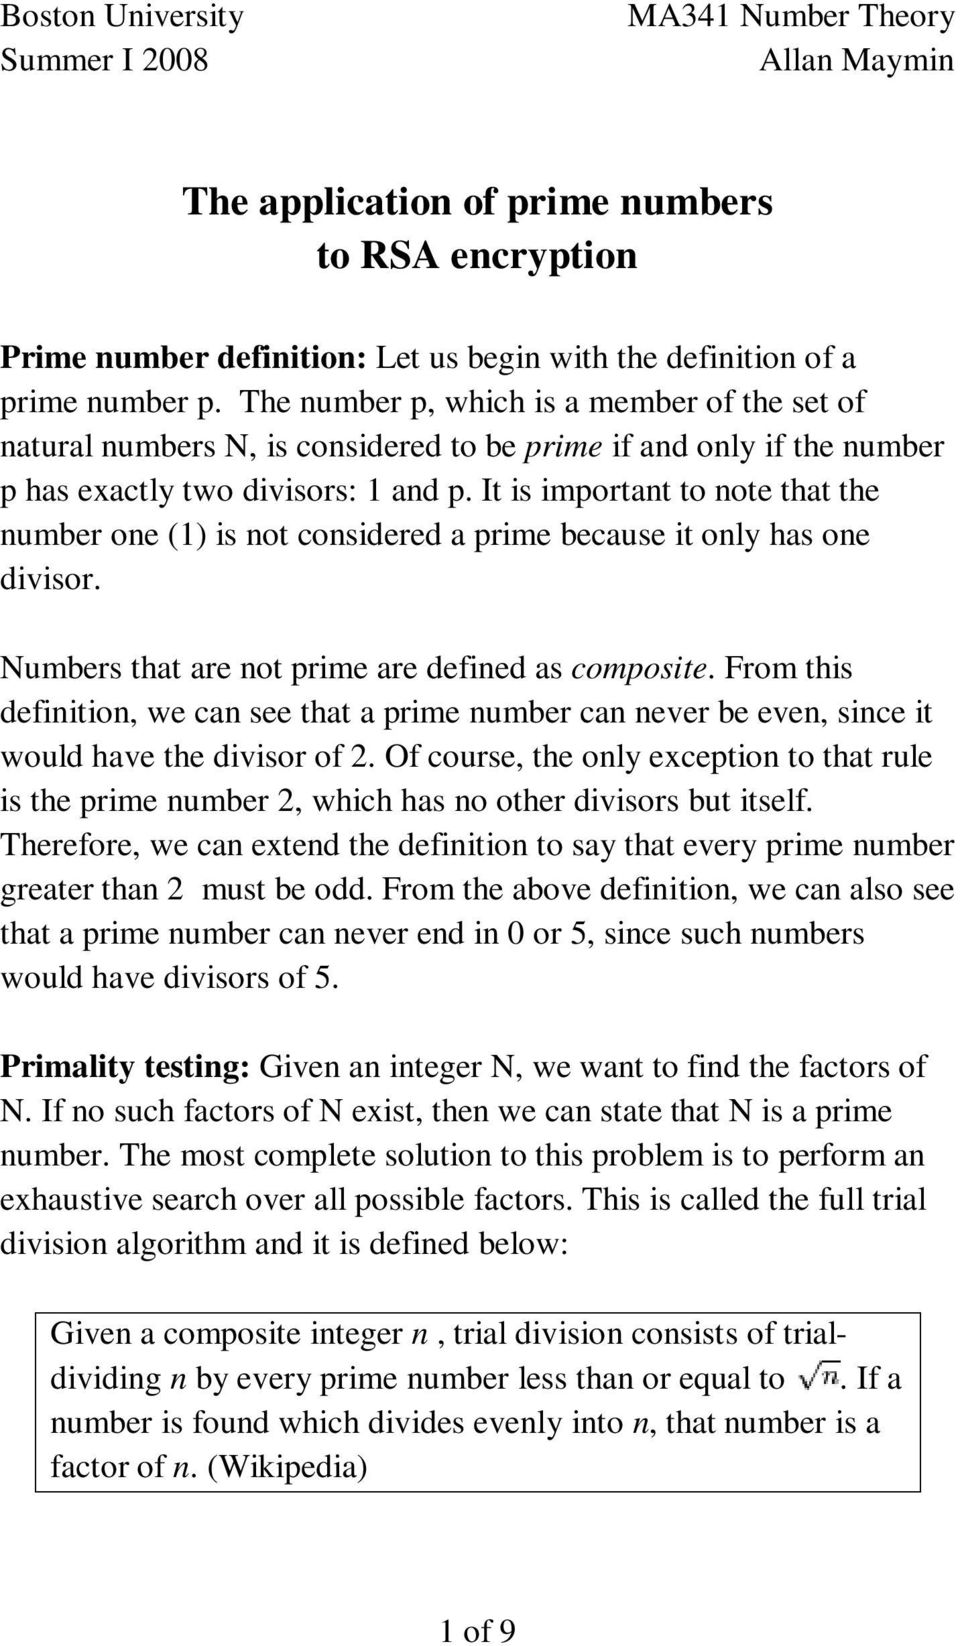 that are not prime are defined as composite From this definition, we can see that a prime number can never be even, since it would have the divisor of 2 Of course, the only exception to that rule is